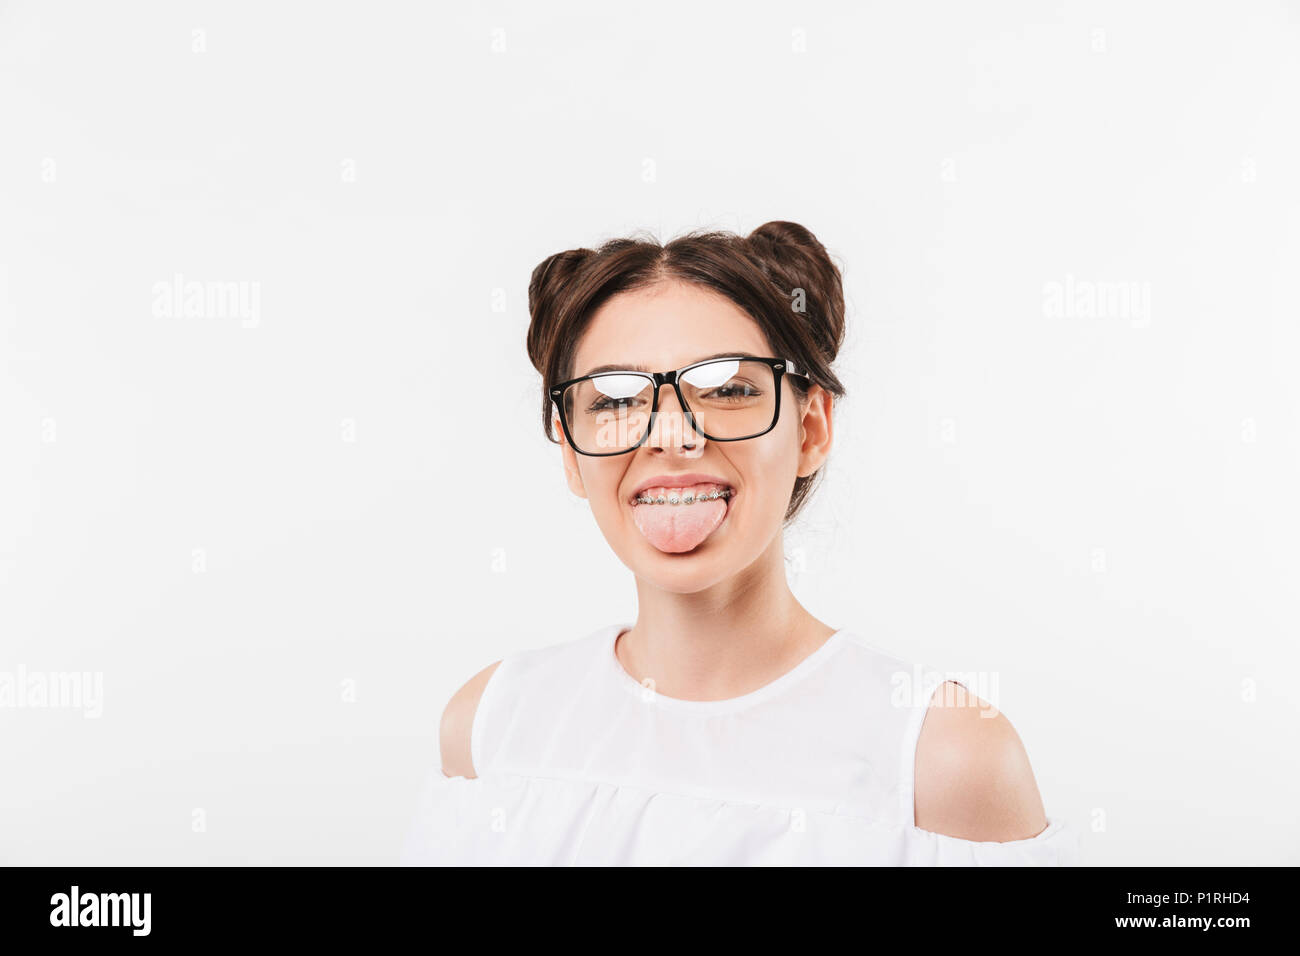 Portrait of a cheerful young girl in sunglasses sticking her tongue out isolated over white background - Stock Image